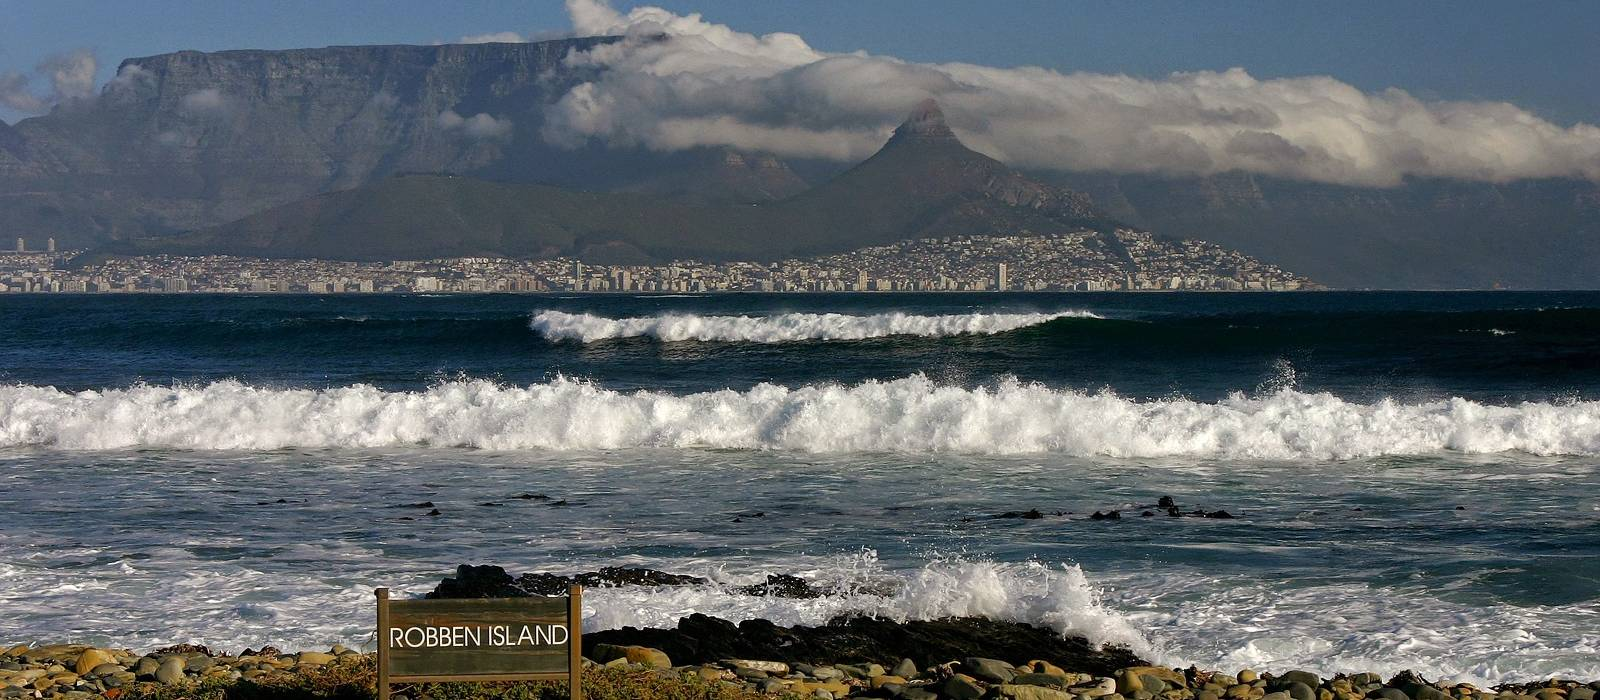 Enchanting Travels South Africa Tours Cape Town and Table mountain seen from the beach of Robben Island - history of South Africa